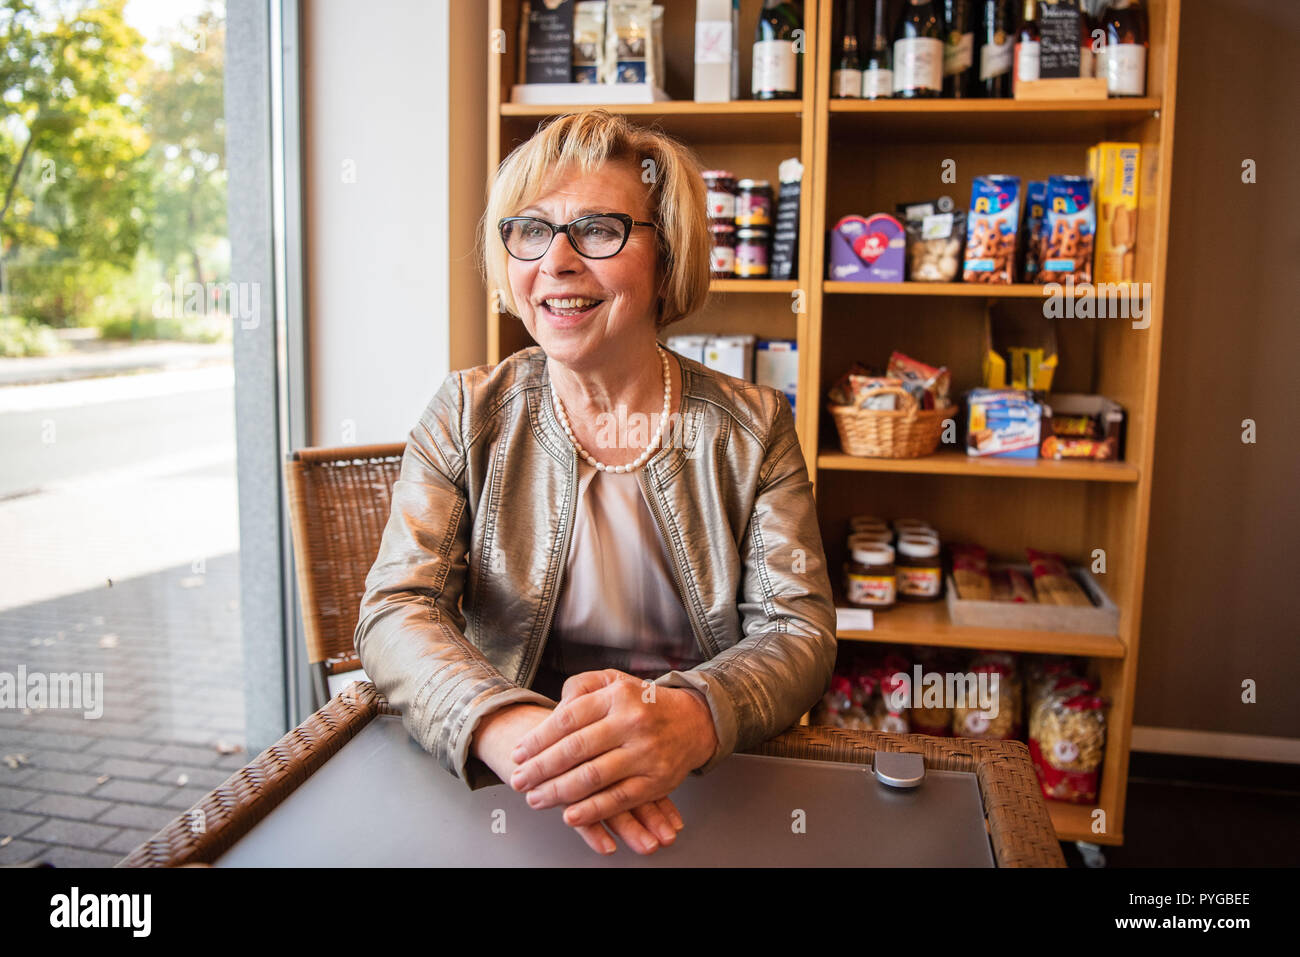 Gieselbach, Germany. 26th Sep, 2018. The Mayor of Geiselbach, Marianne Krohnen (CSU). The 67-year-old CSU politician has been in office since 1984 and is Germany's longest-serving mayor. Credit: Nicolas Armer/dpa/Alamy Live News - Stock Image